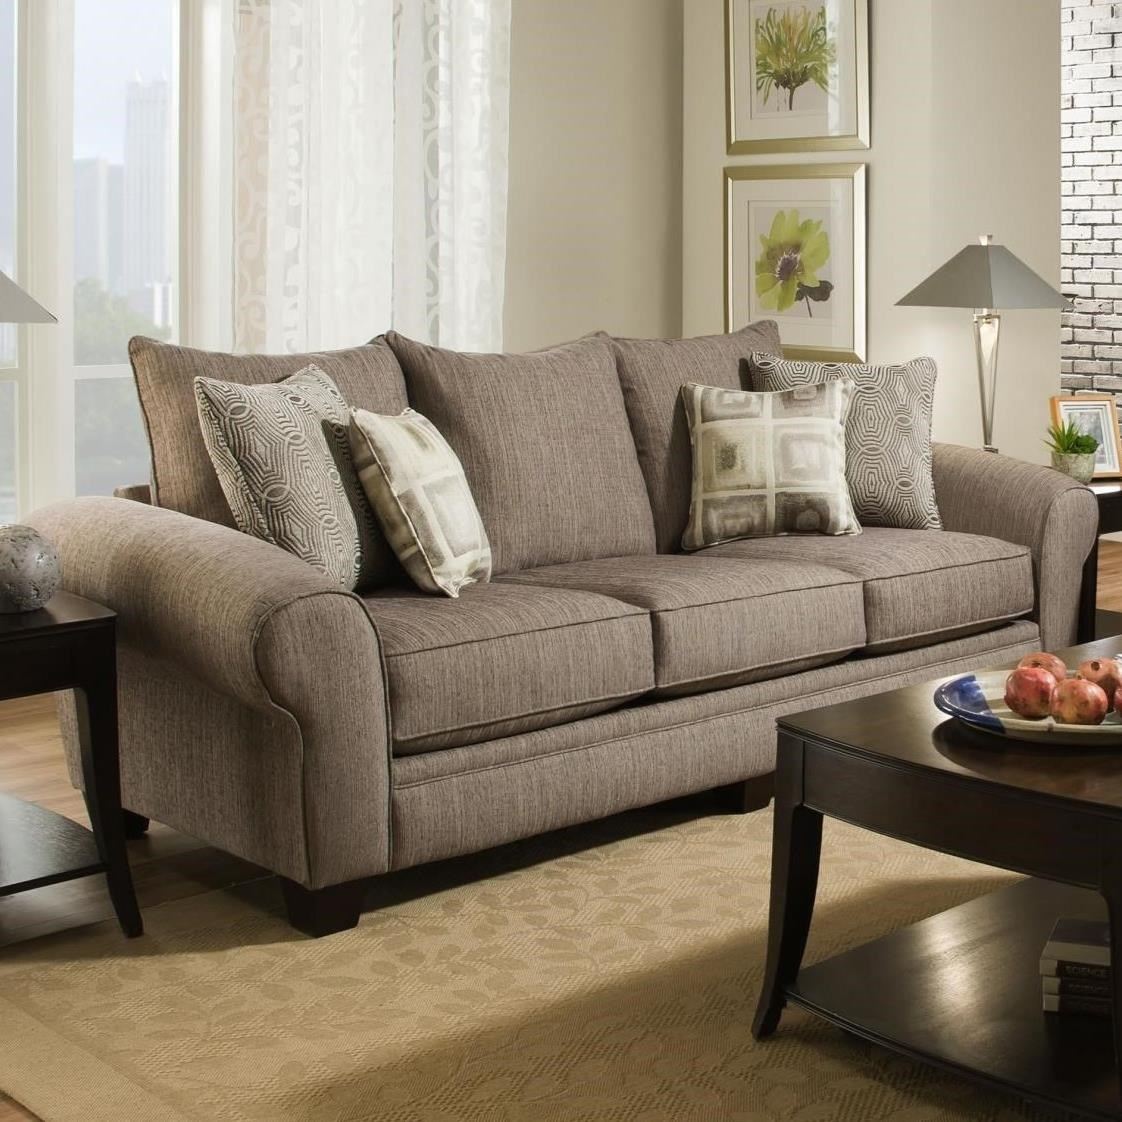 Exceptional Albany 911 3 Seater Sofa With Large Rolled Arms